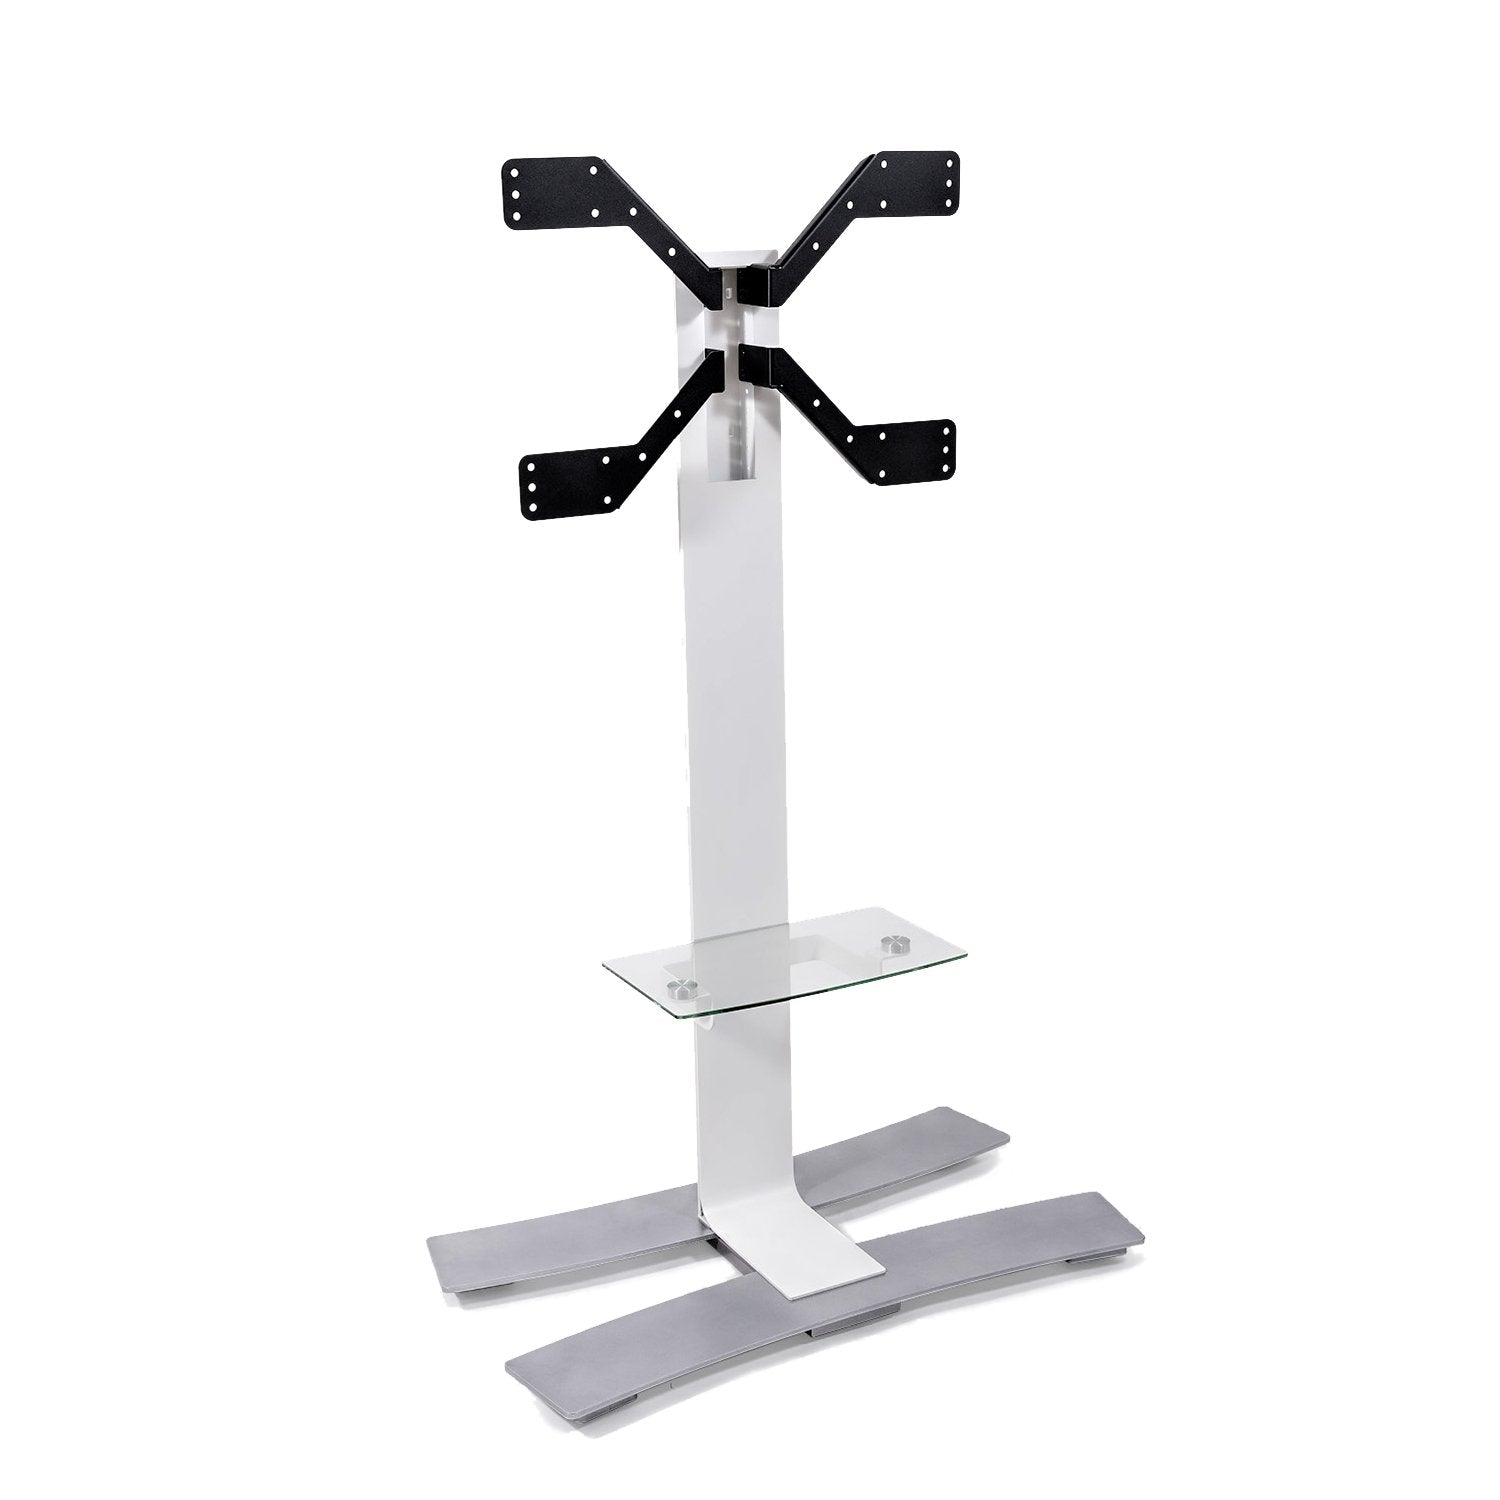 ERARD WILL™ 1400 Mobile Stand with Shelf for 40